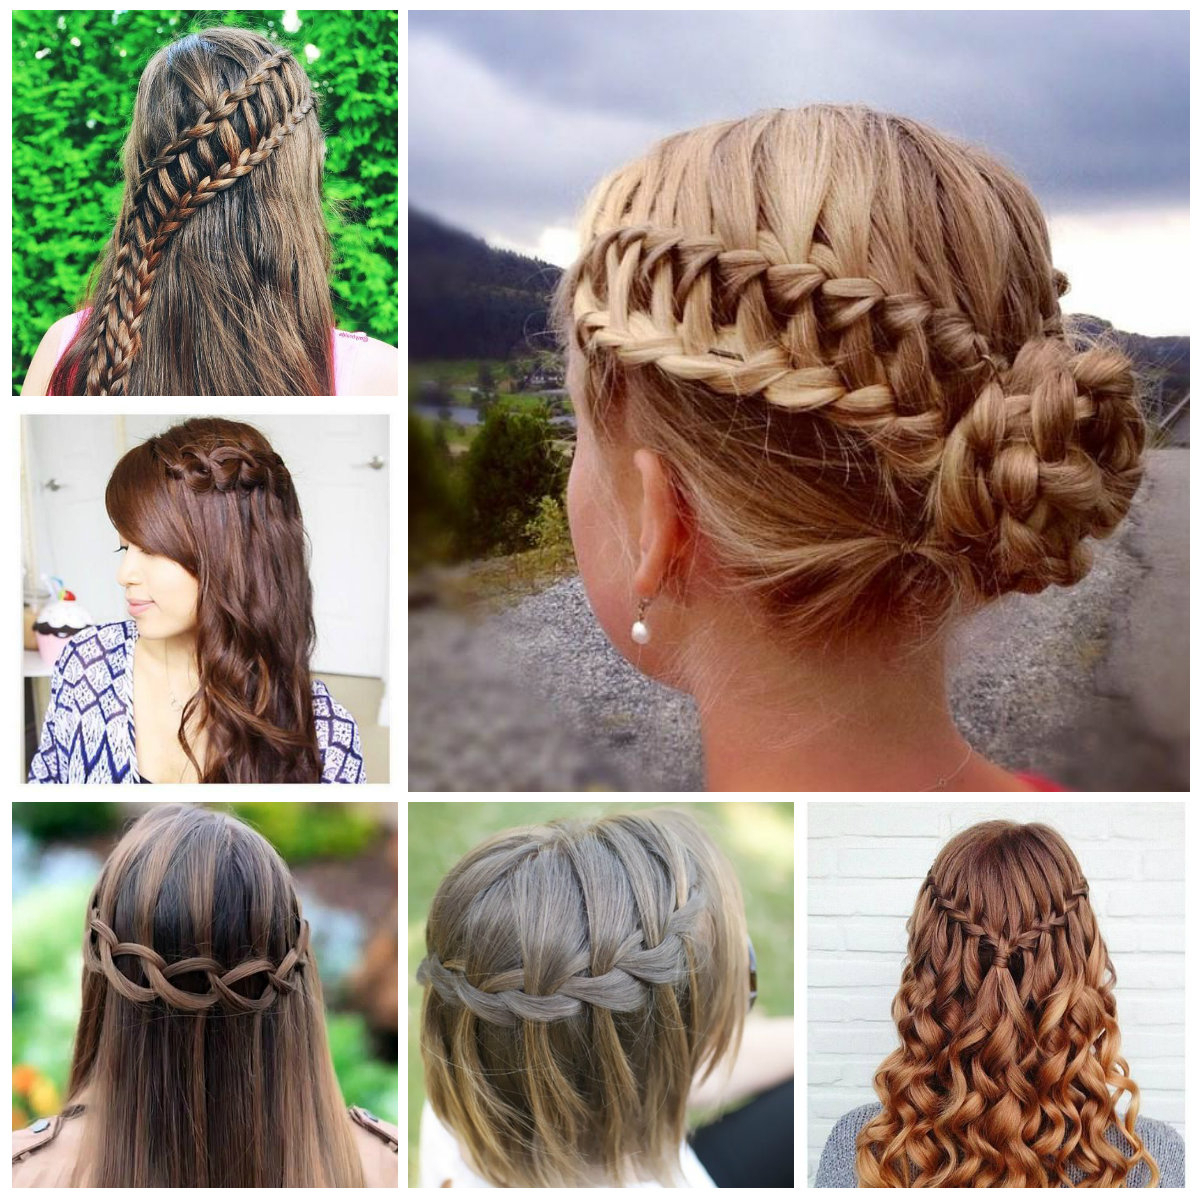 2019 Haircuts, Hairstyles Within Favorite Chic Waterfall Braid Prom Updos (View 14 of 20)